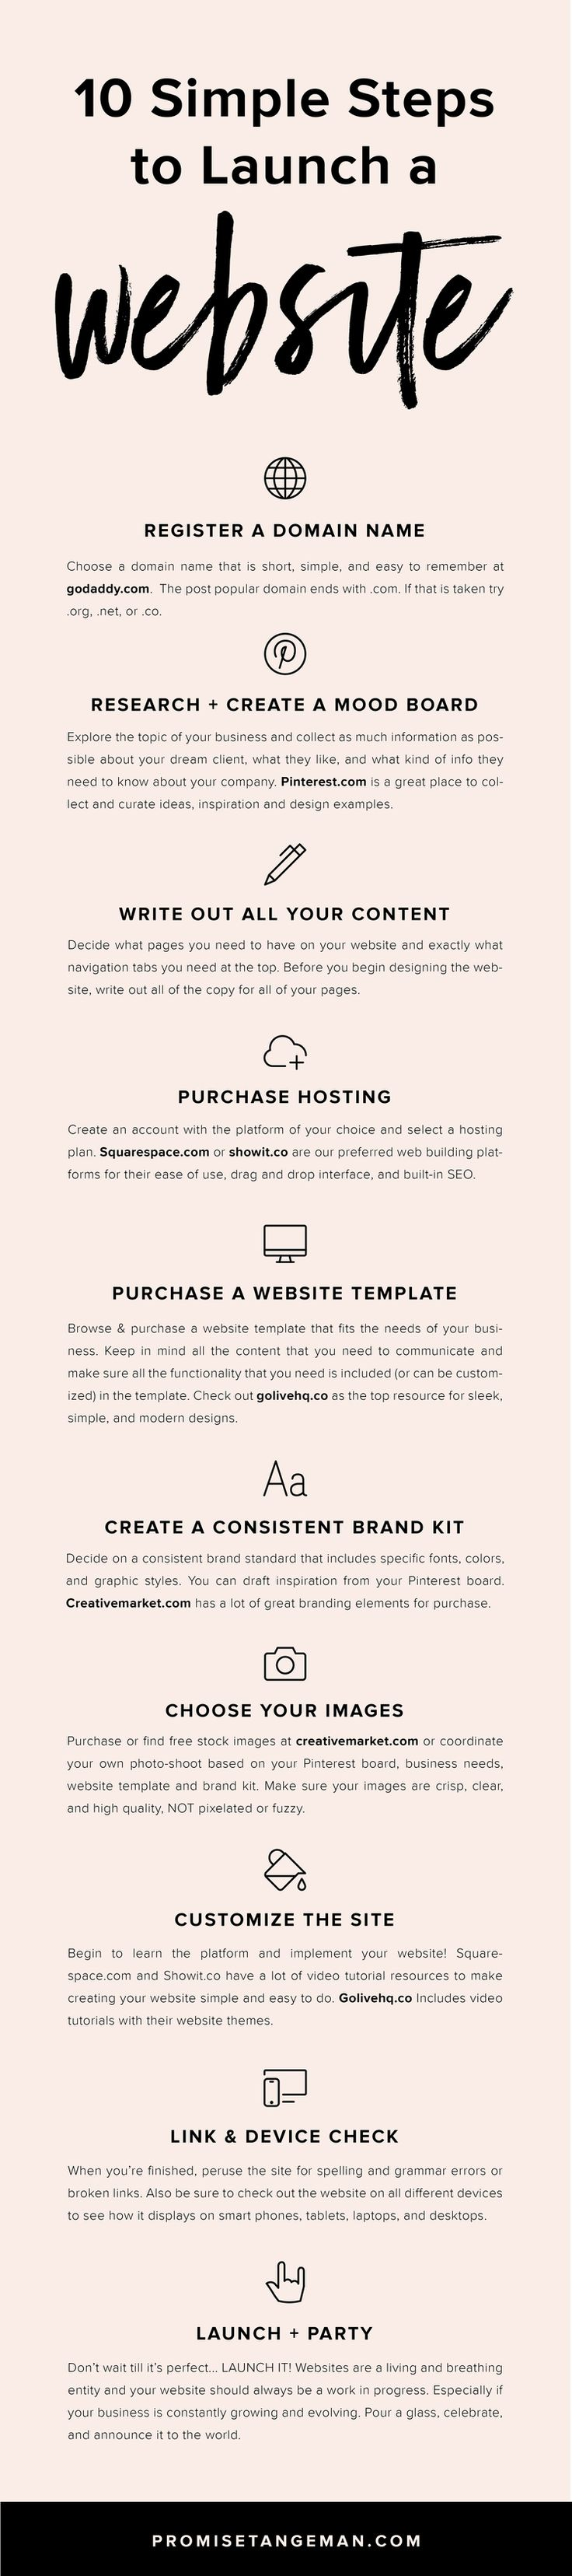 10 steps to launch a website